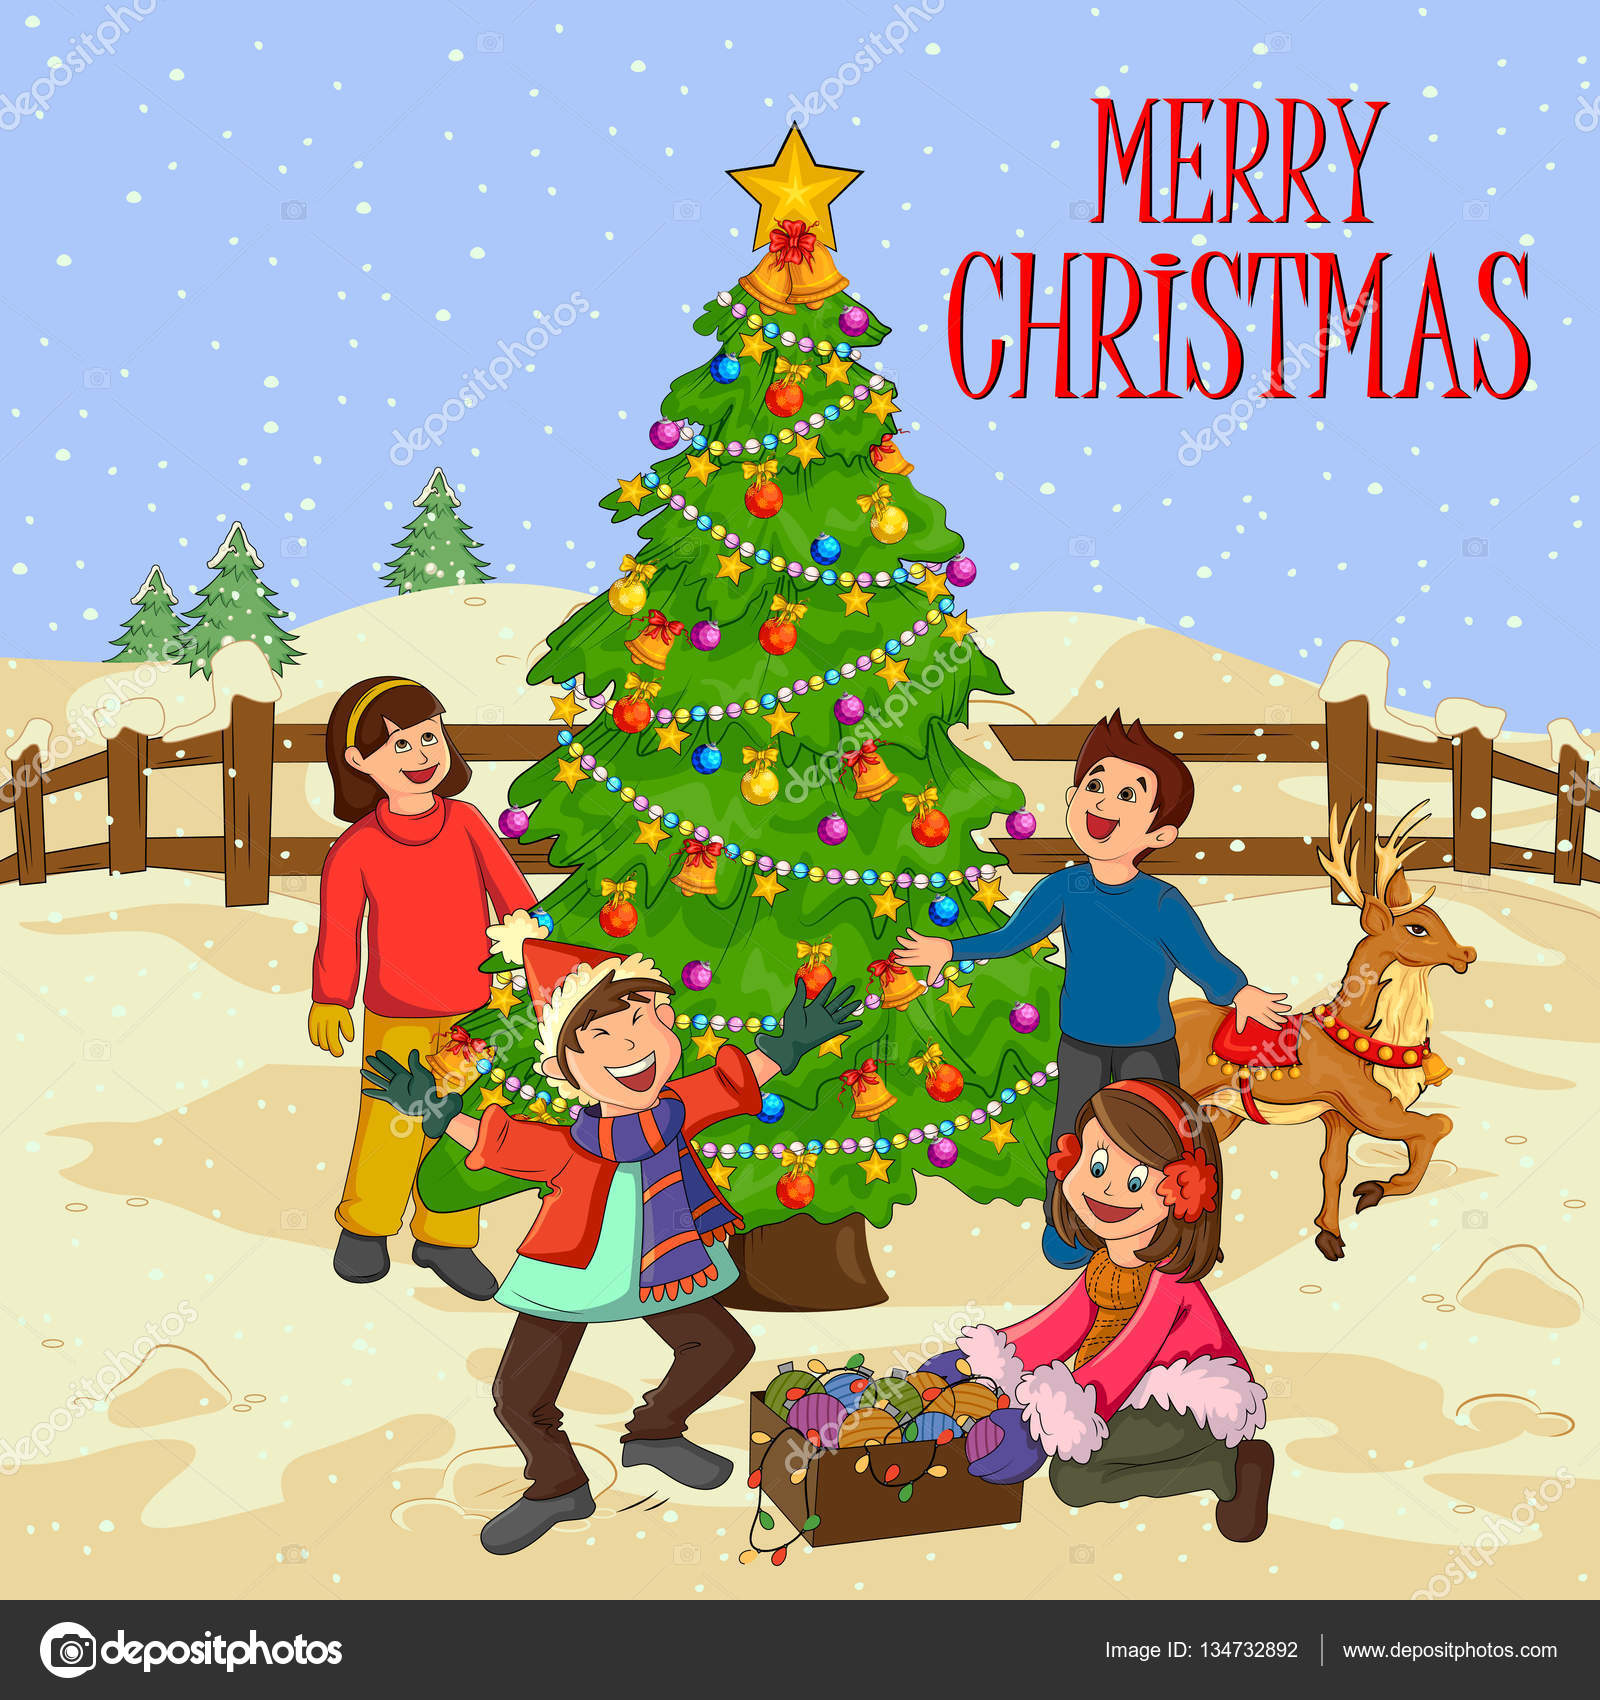 Christmas Festival Cartoon Images.People Celebrating Festival Merry Christmas Holiday